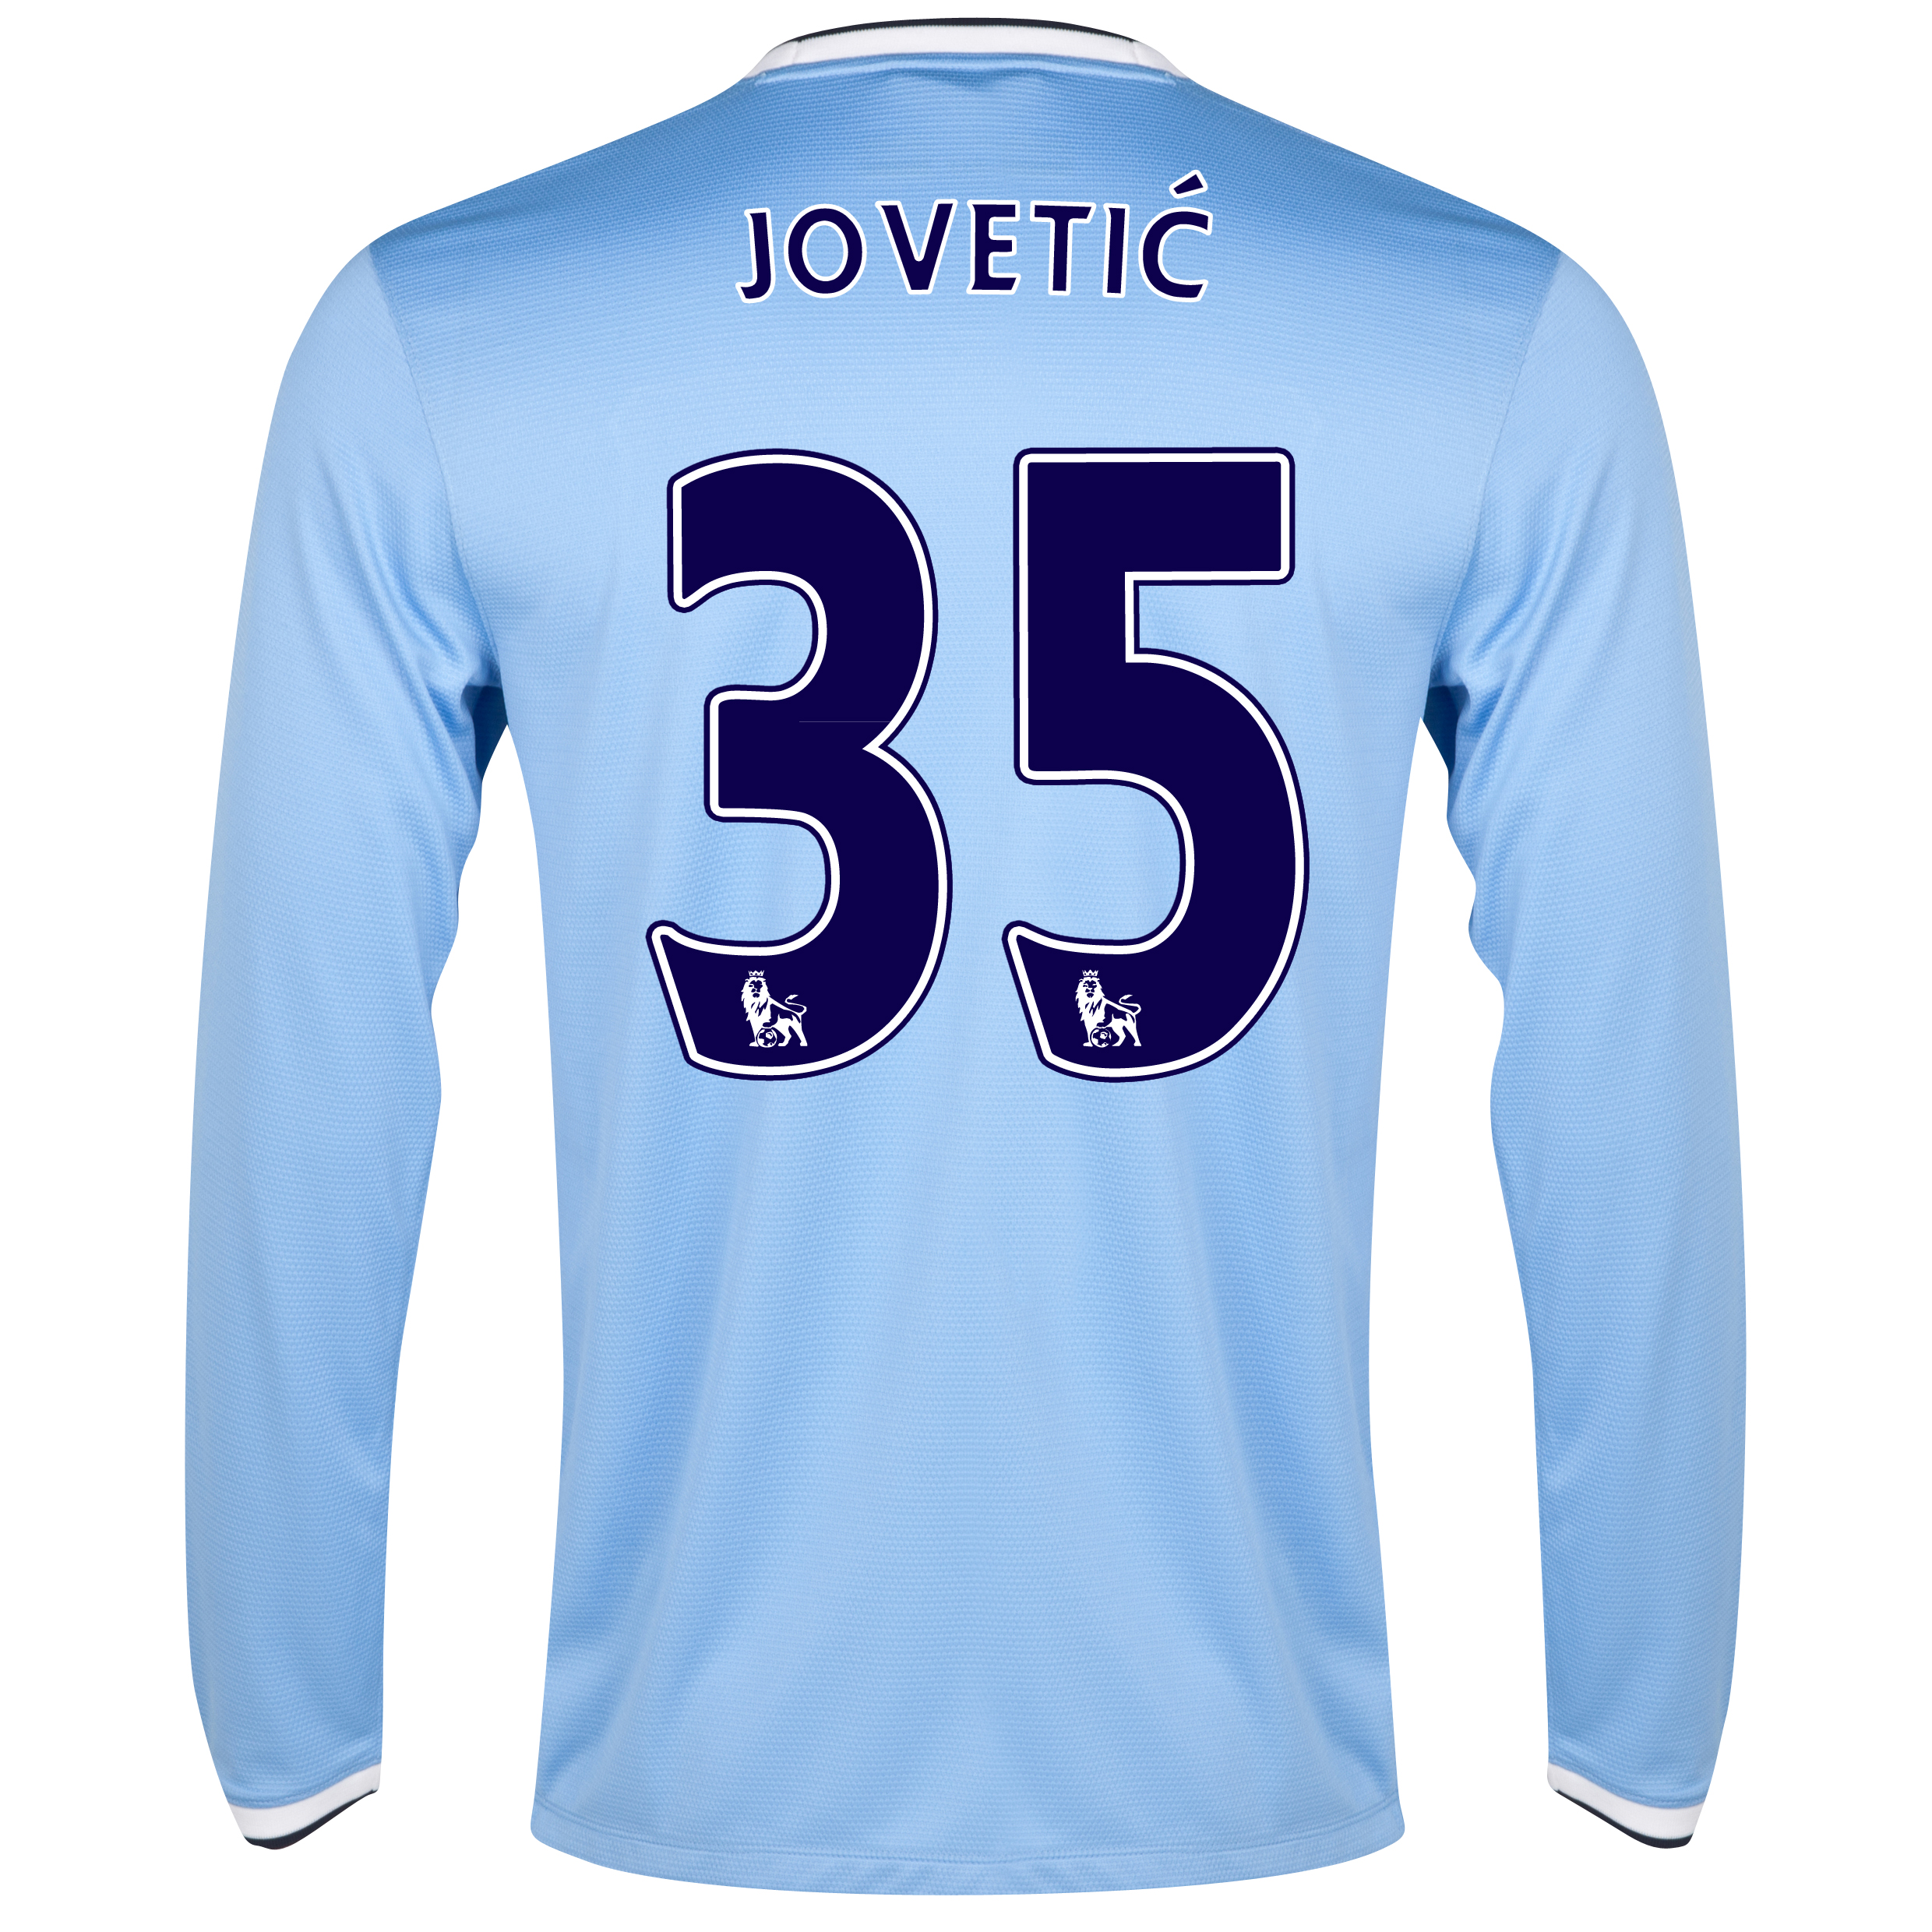 Manchester City Home Shirt 2013/14 - Long Sleeved with Jovetic 35 printing